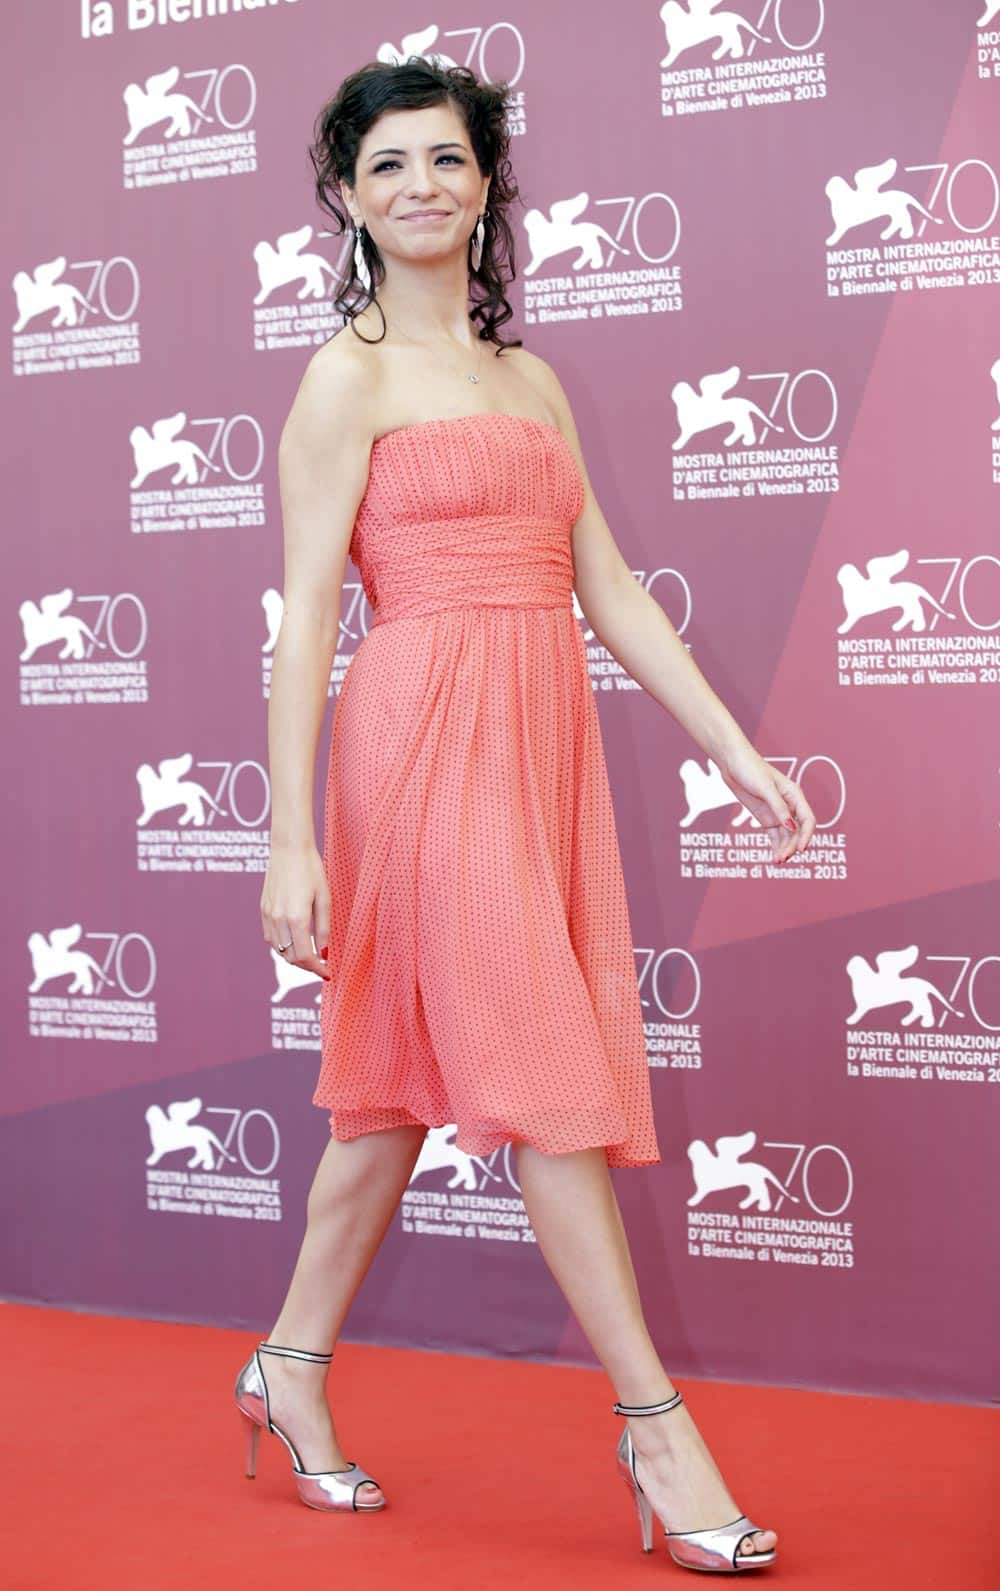 Actress Meriem Medjkane poses for photographers during the photo call of the film 'Les Terrasses' at the 70th edition of the Venice Film Festival.